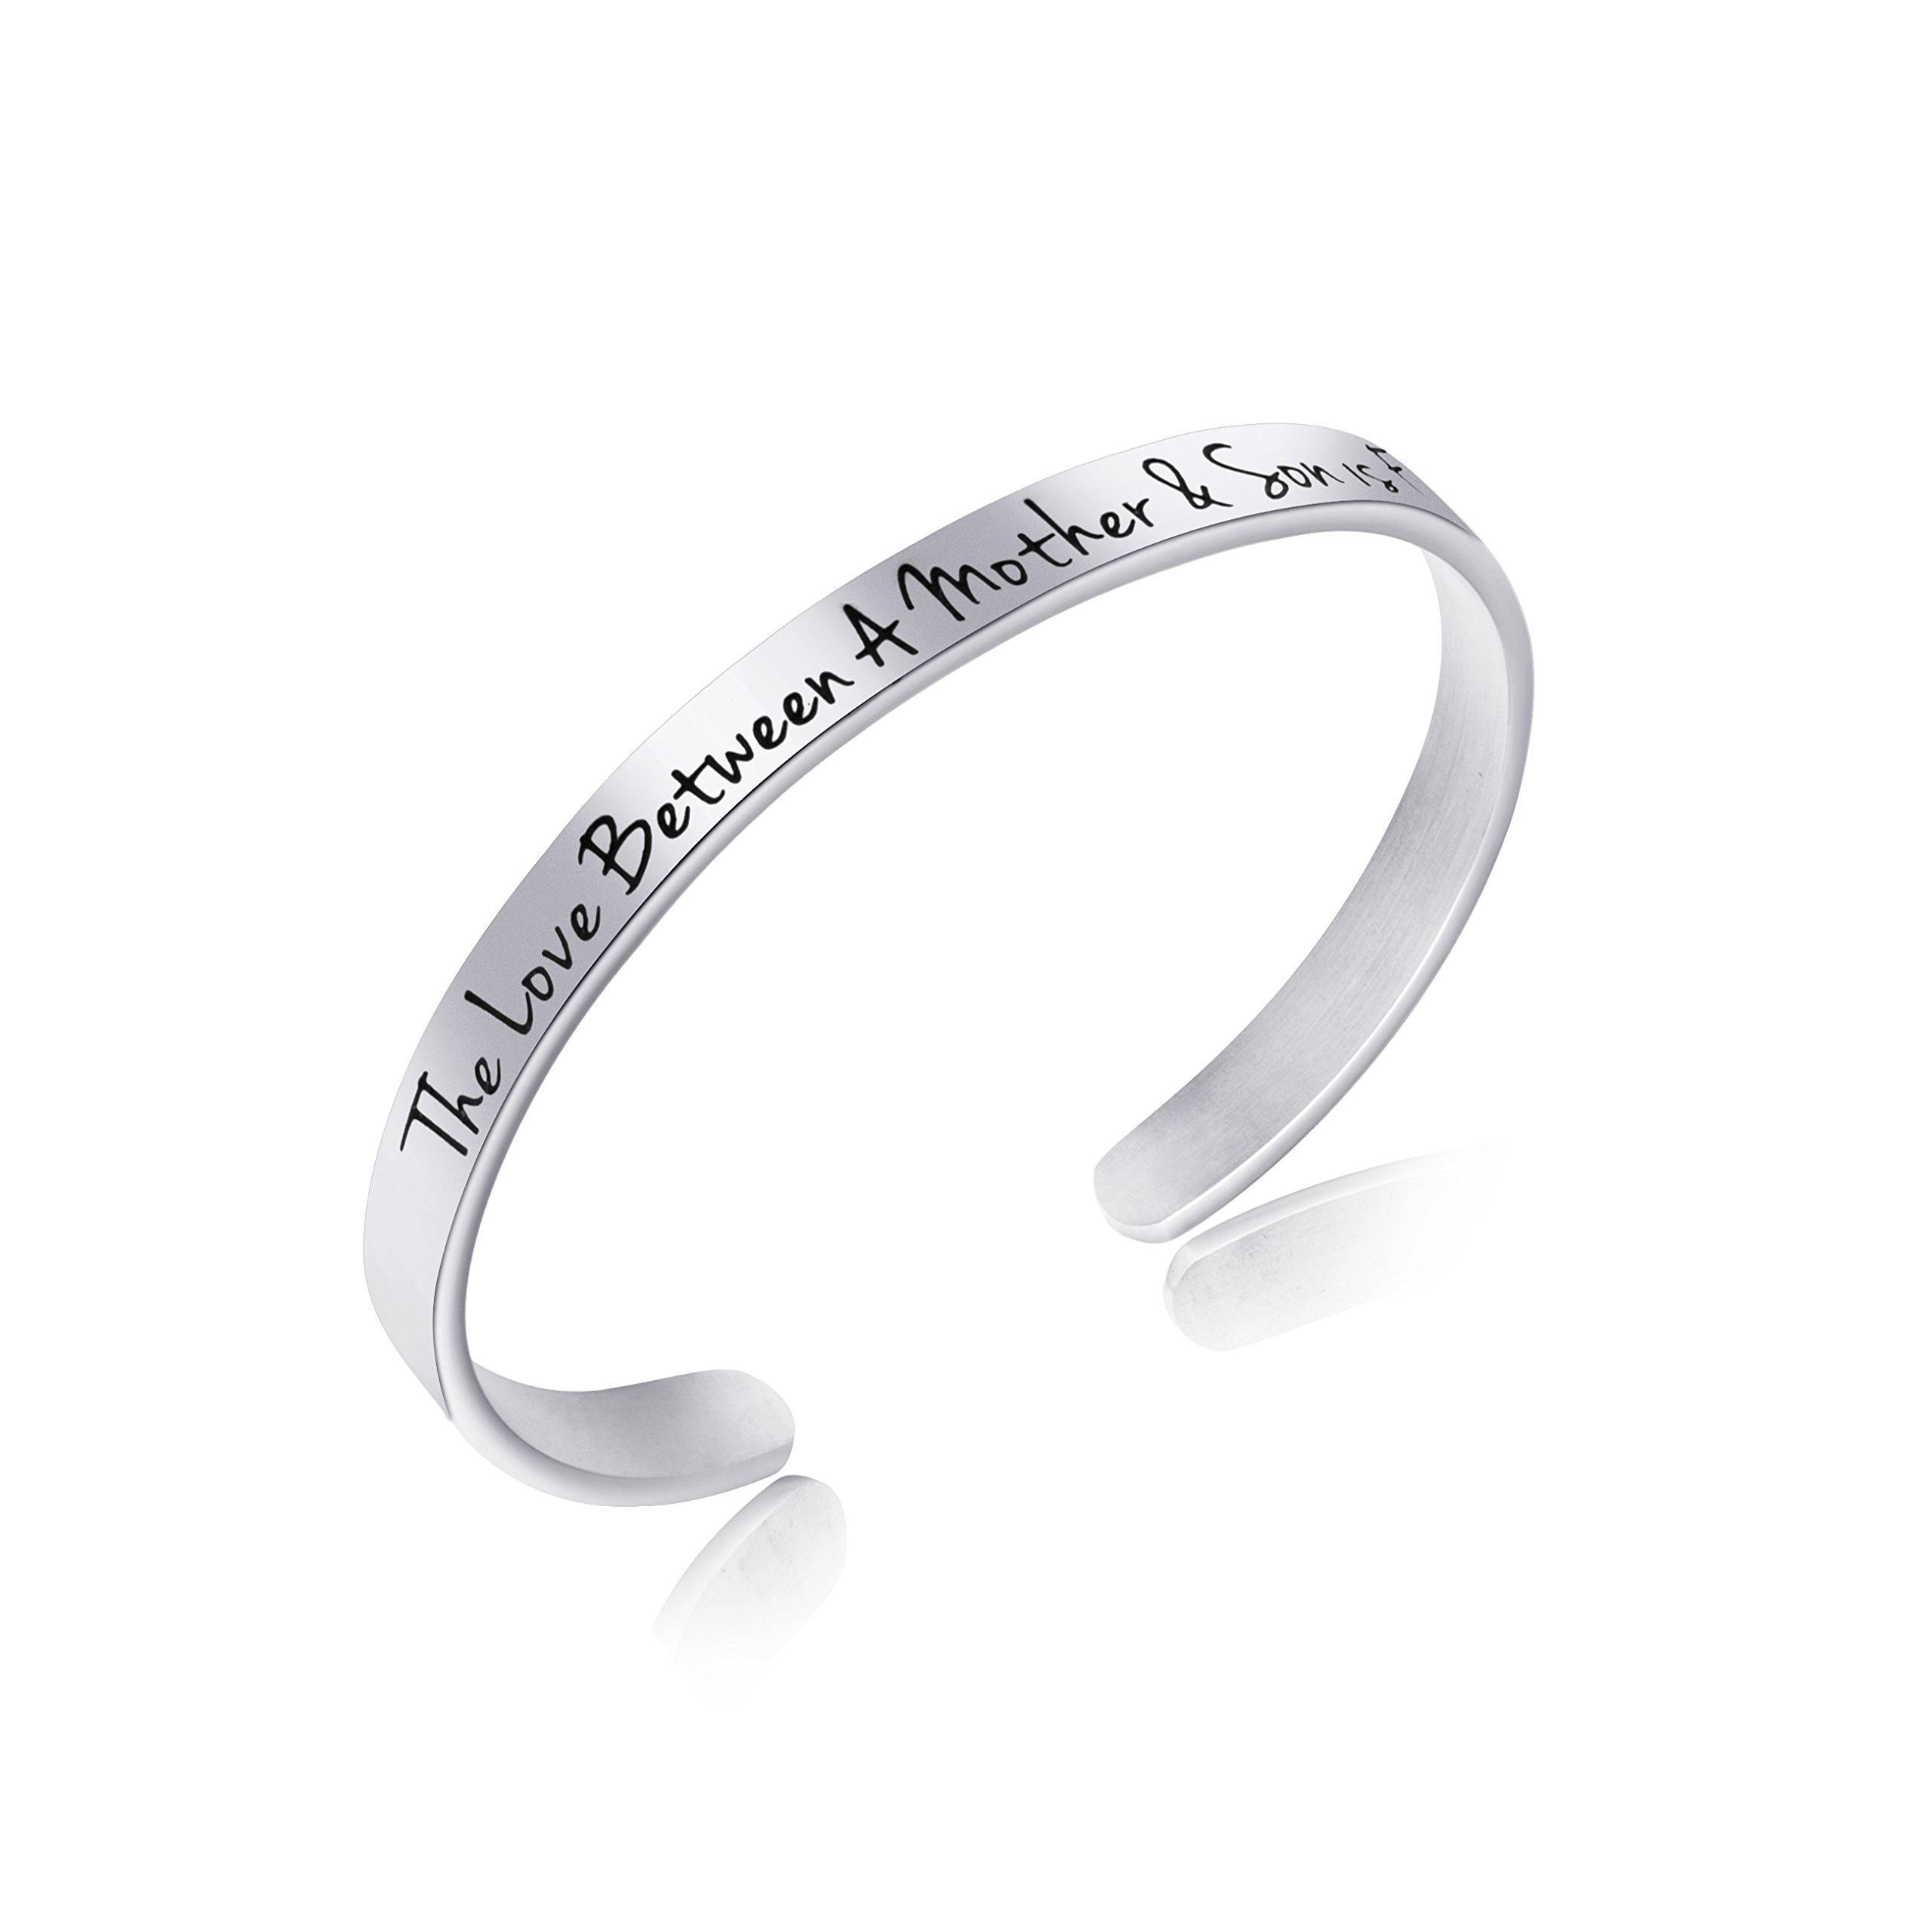 Awegift from Son Mom's Jewelry Cuff Bracelet Personalized Bangle Engraved Her